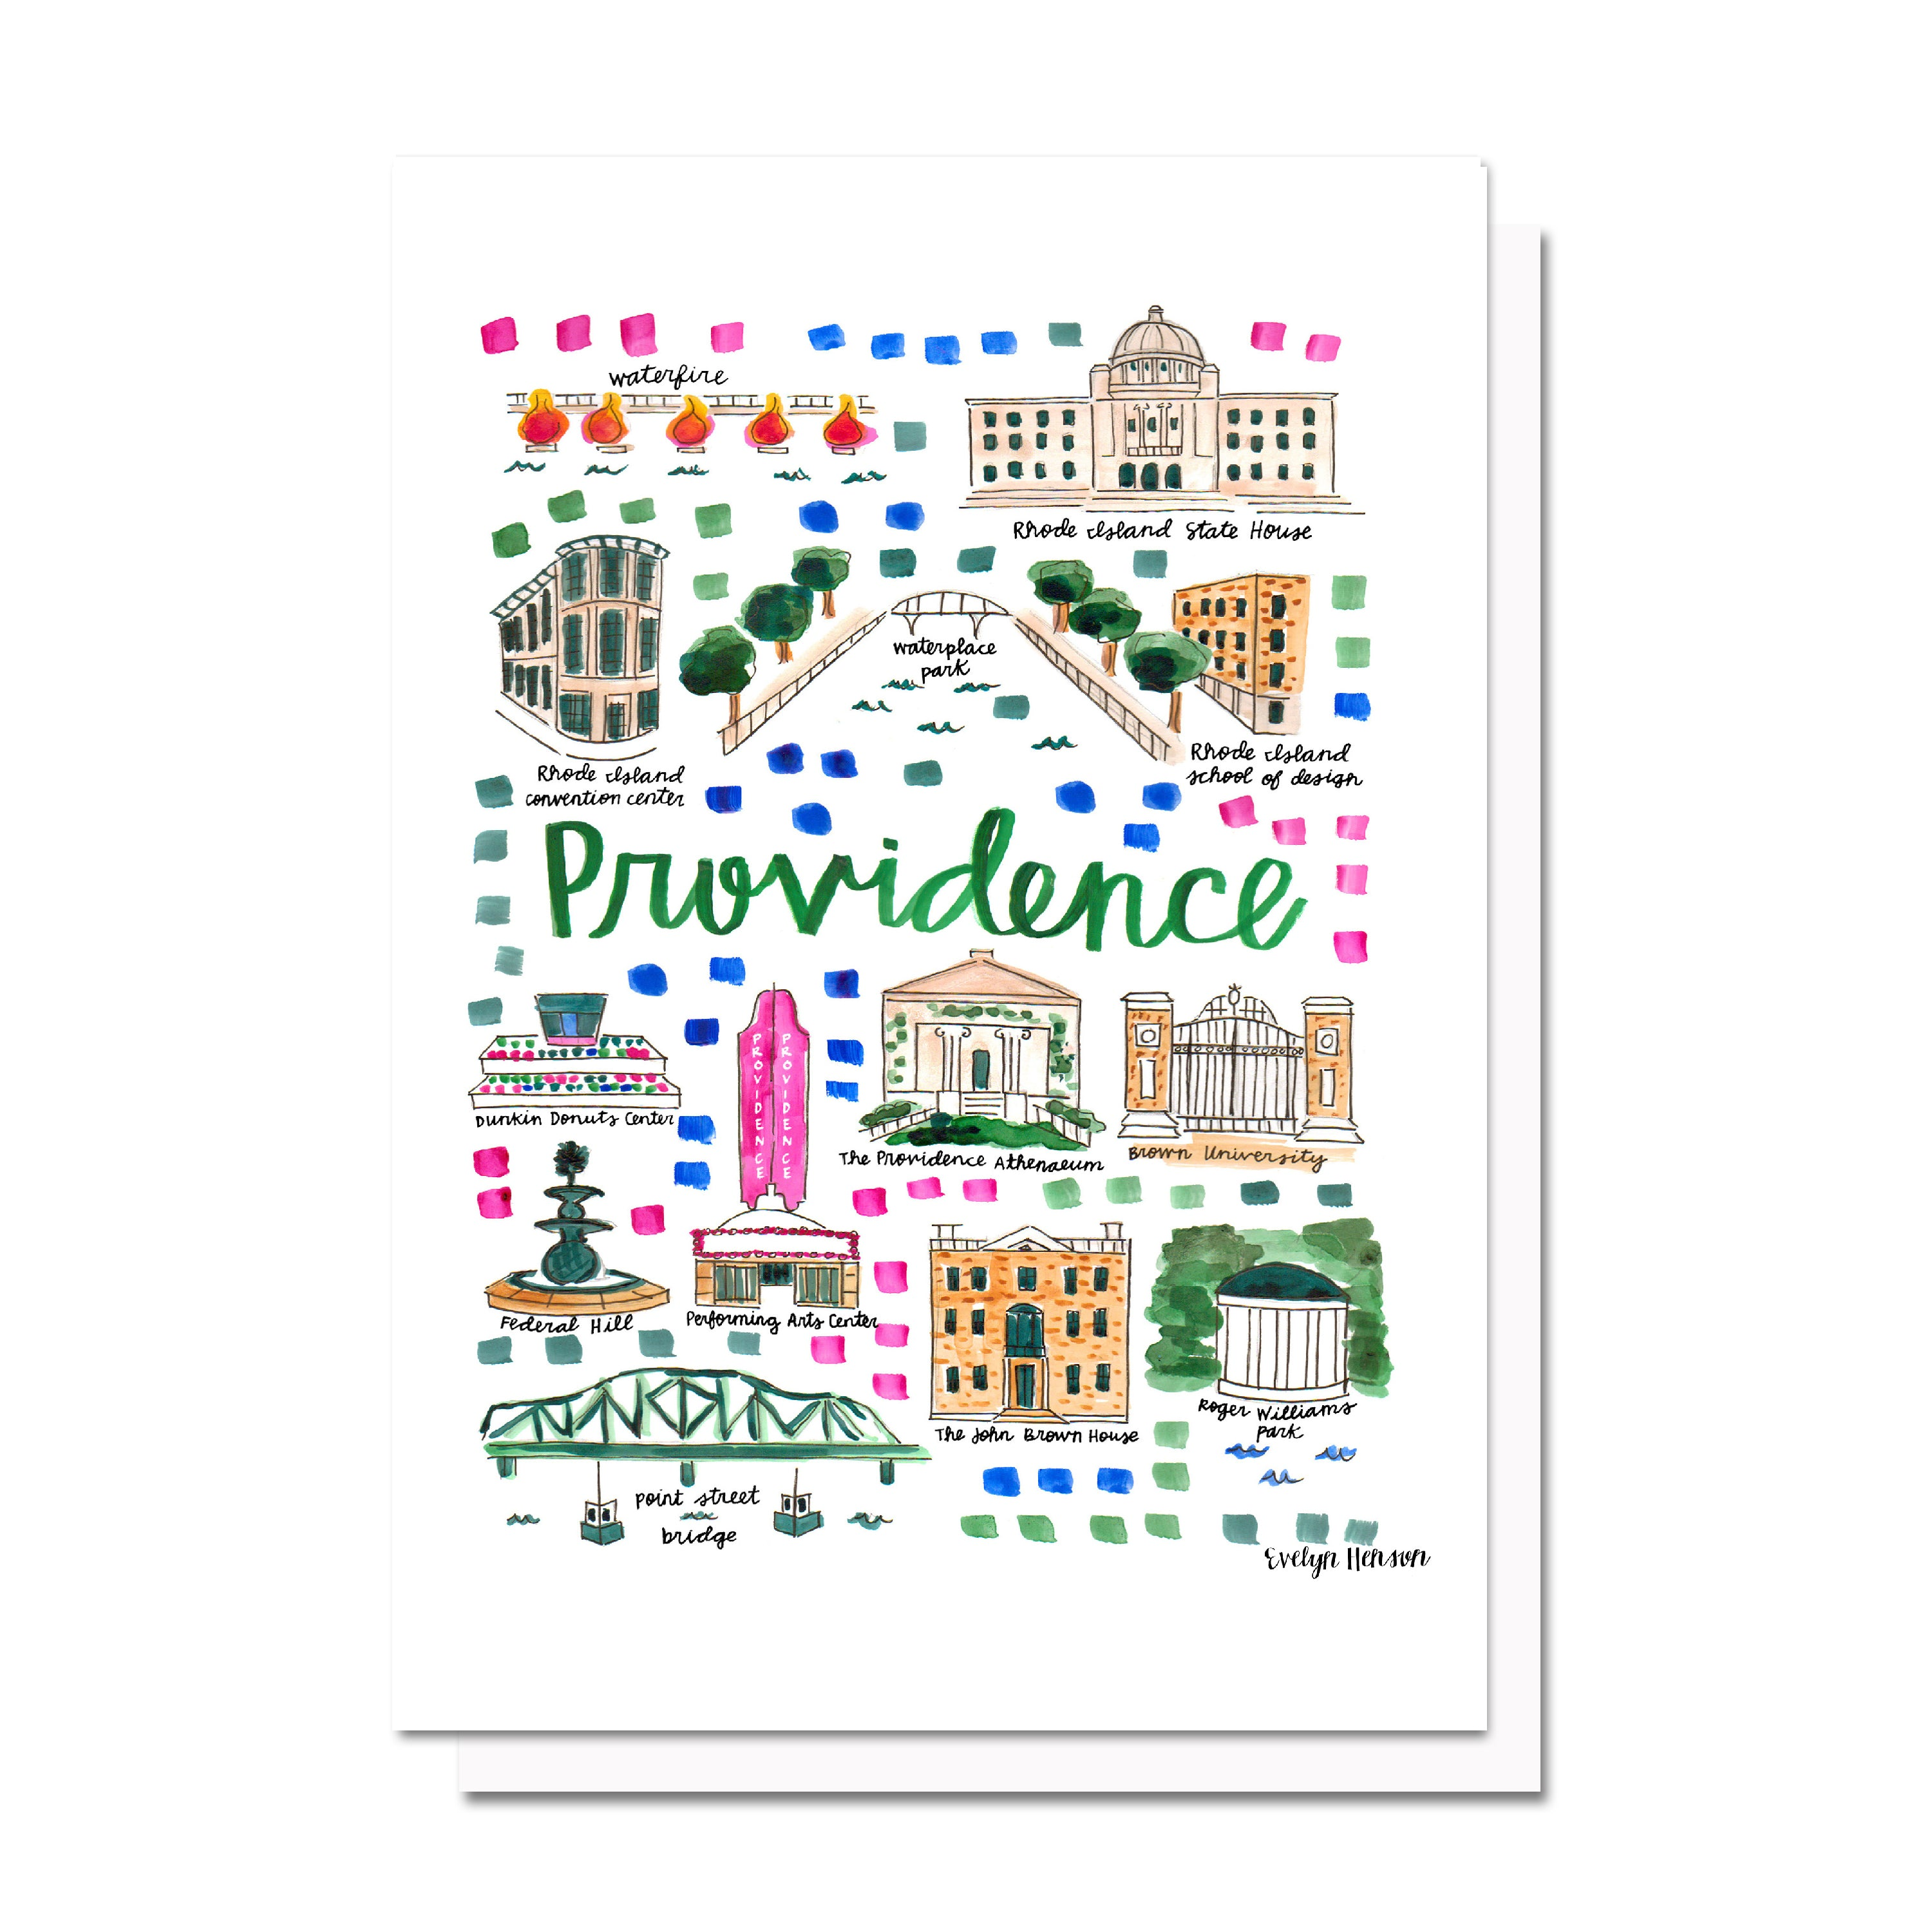 Providence, RI Map Card – Evelyn Henson